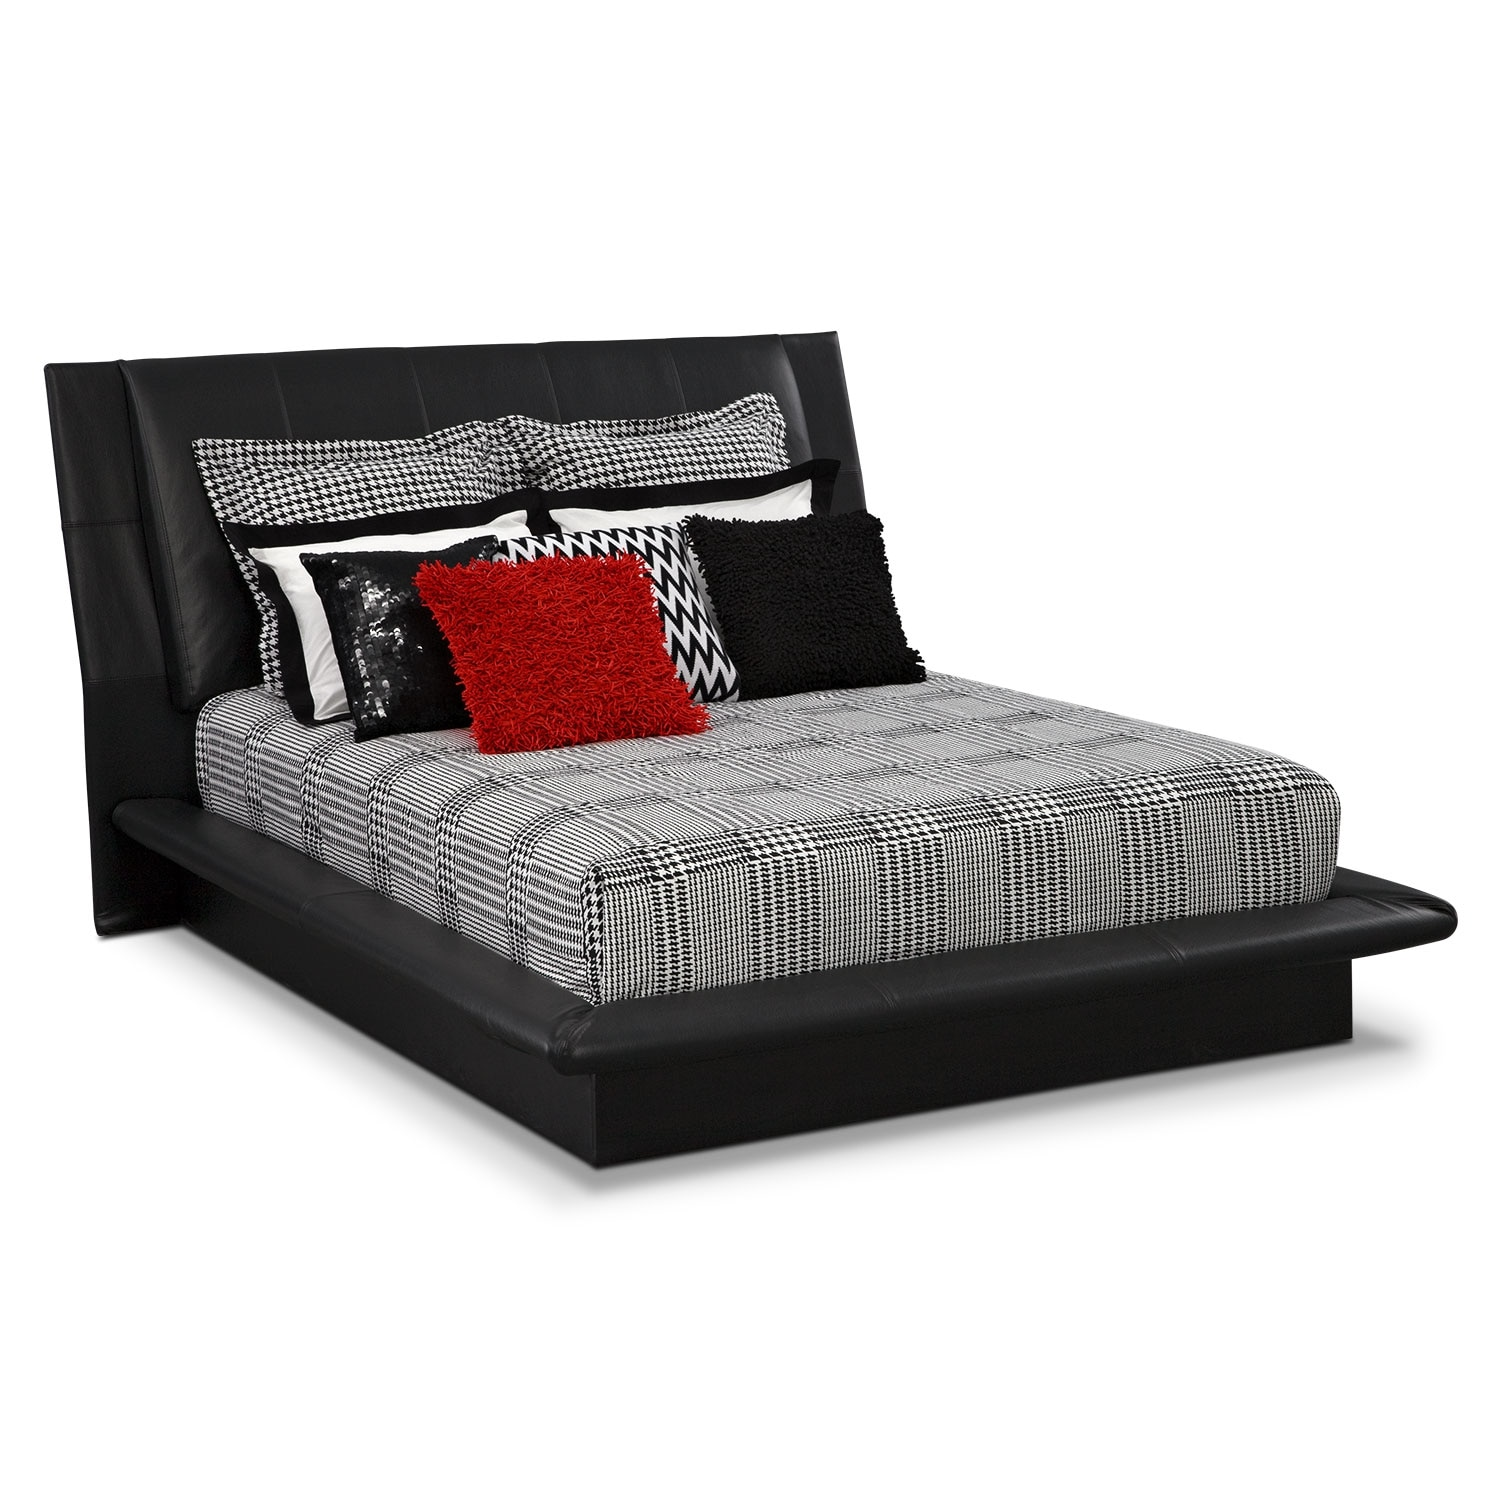 Houndstooth King Bedding Set